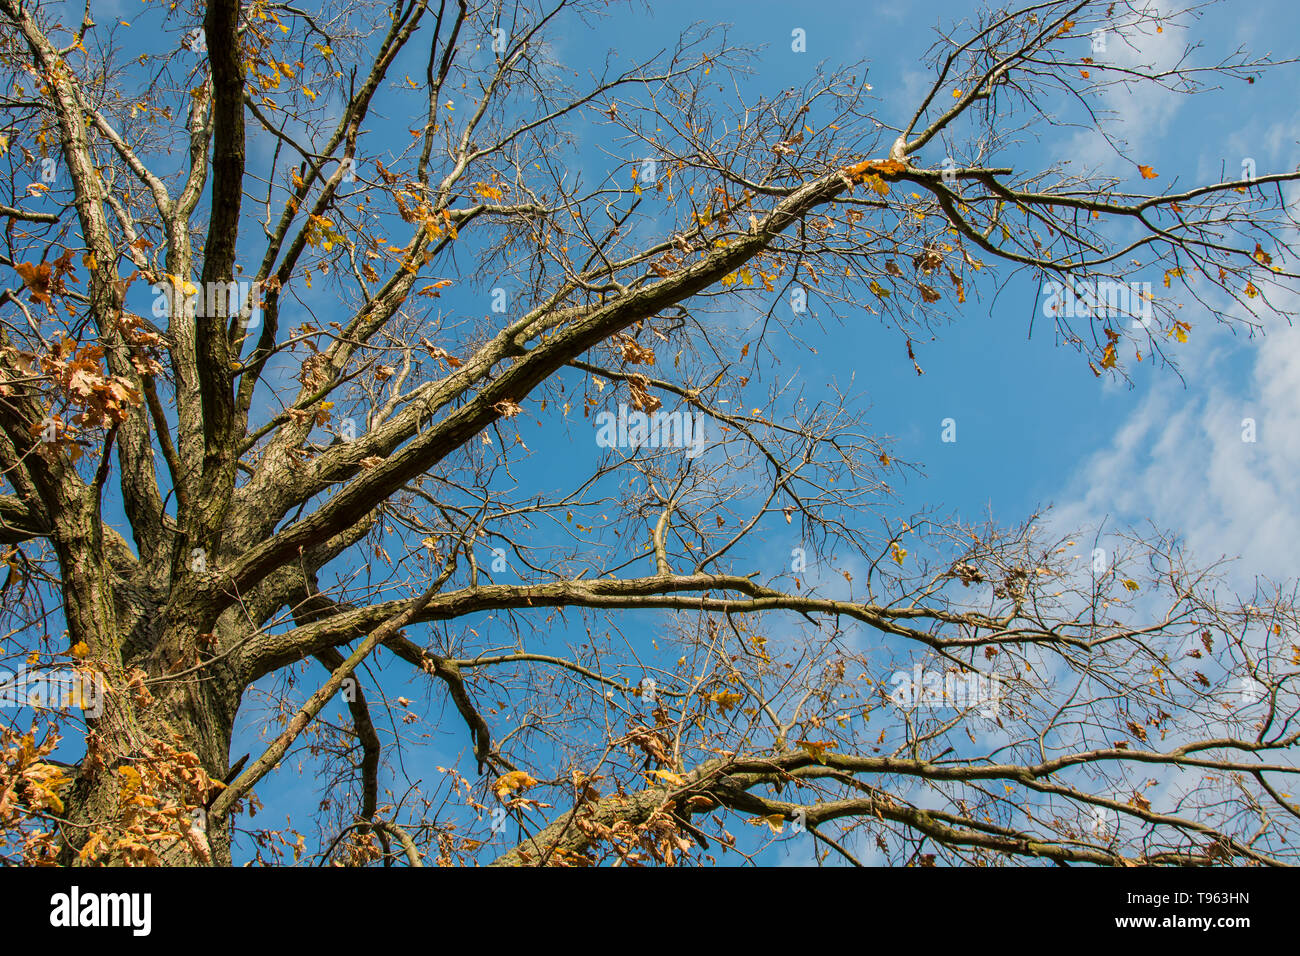 Crown and branches of oak tree without leaves on sky background - view from below - Stock Image